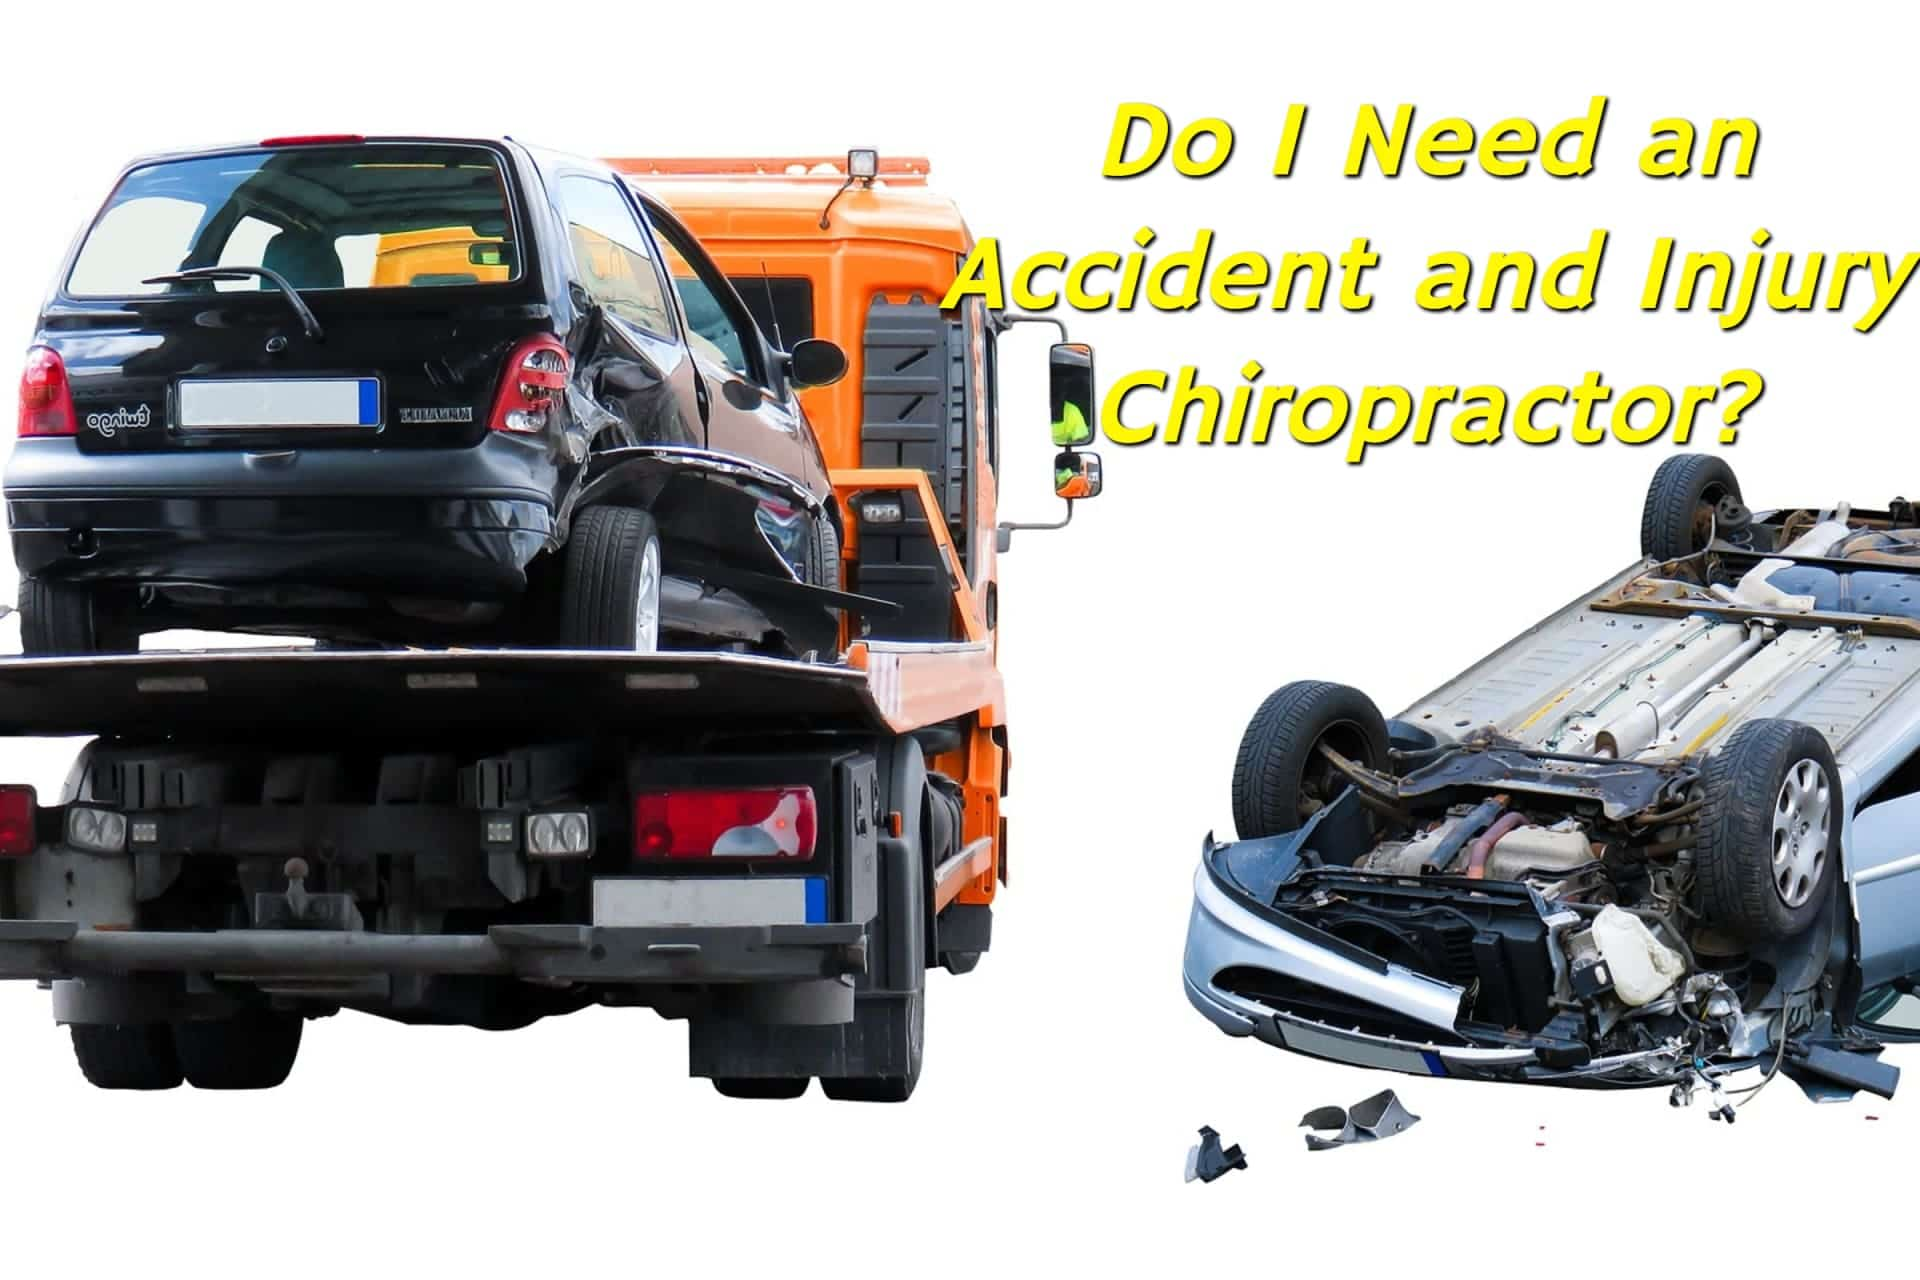 Should I See a Chiropractor after an Accident?